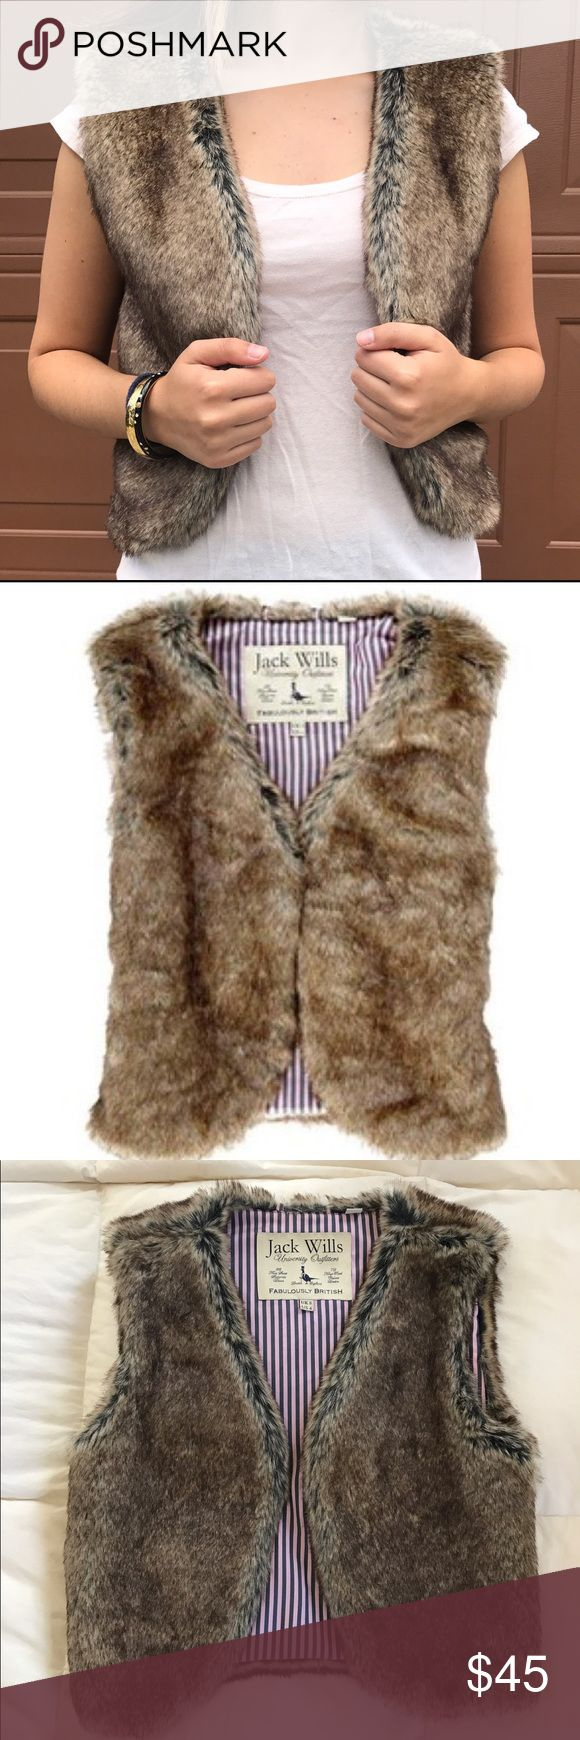 Jack Wills Fur Vest Faux fur vest in pristine condition, worn once. Fitted cut that can be paired with flannel and jeans for a preppy vibe. Jack Wills Jackets & Coats Vests